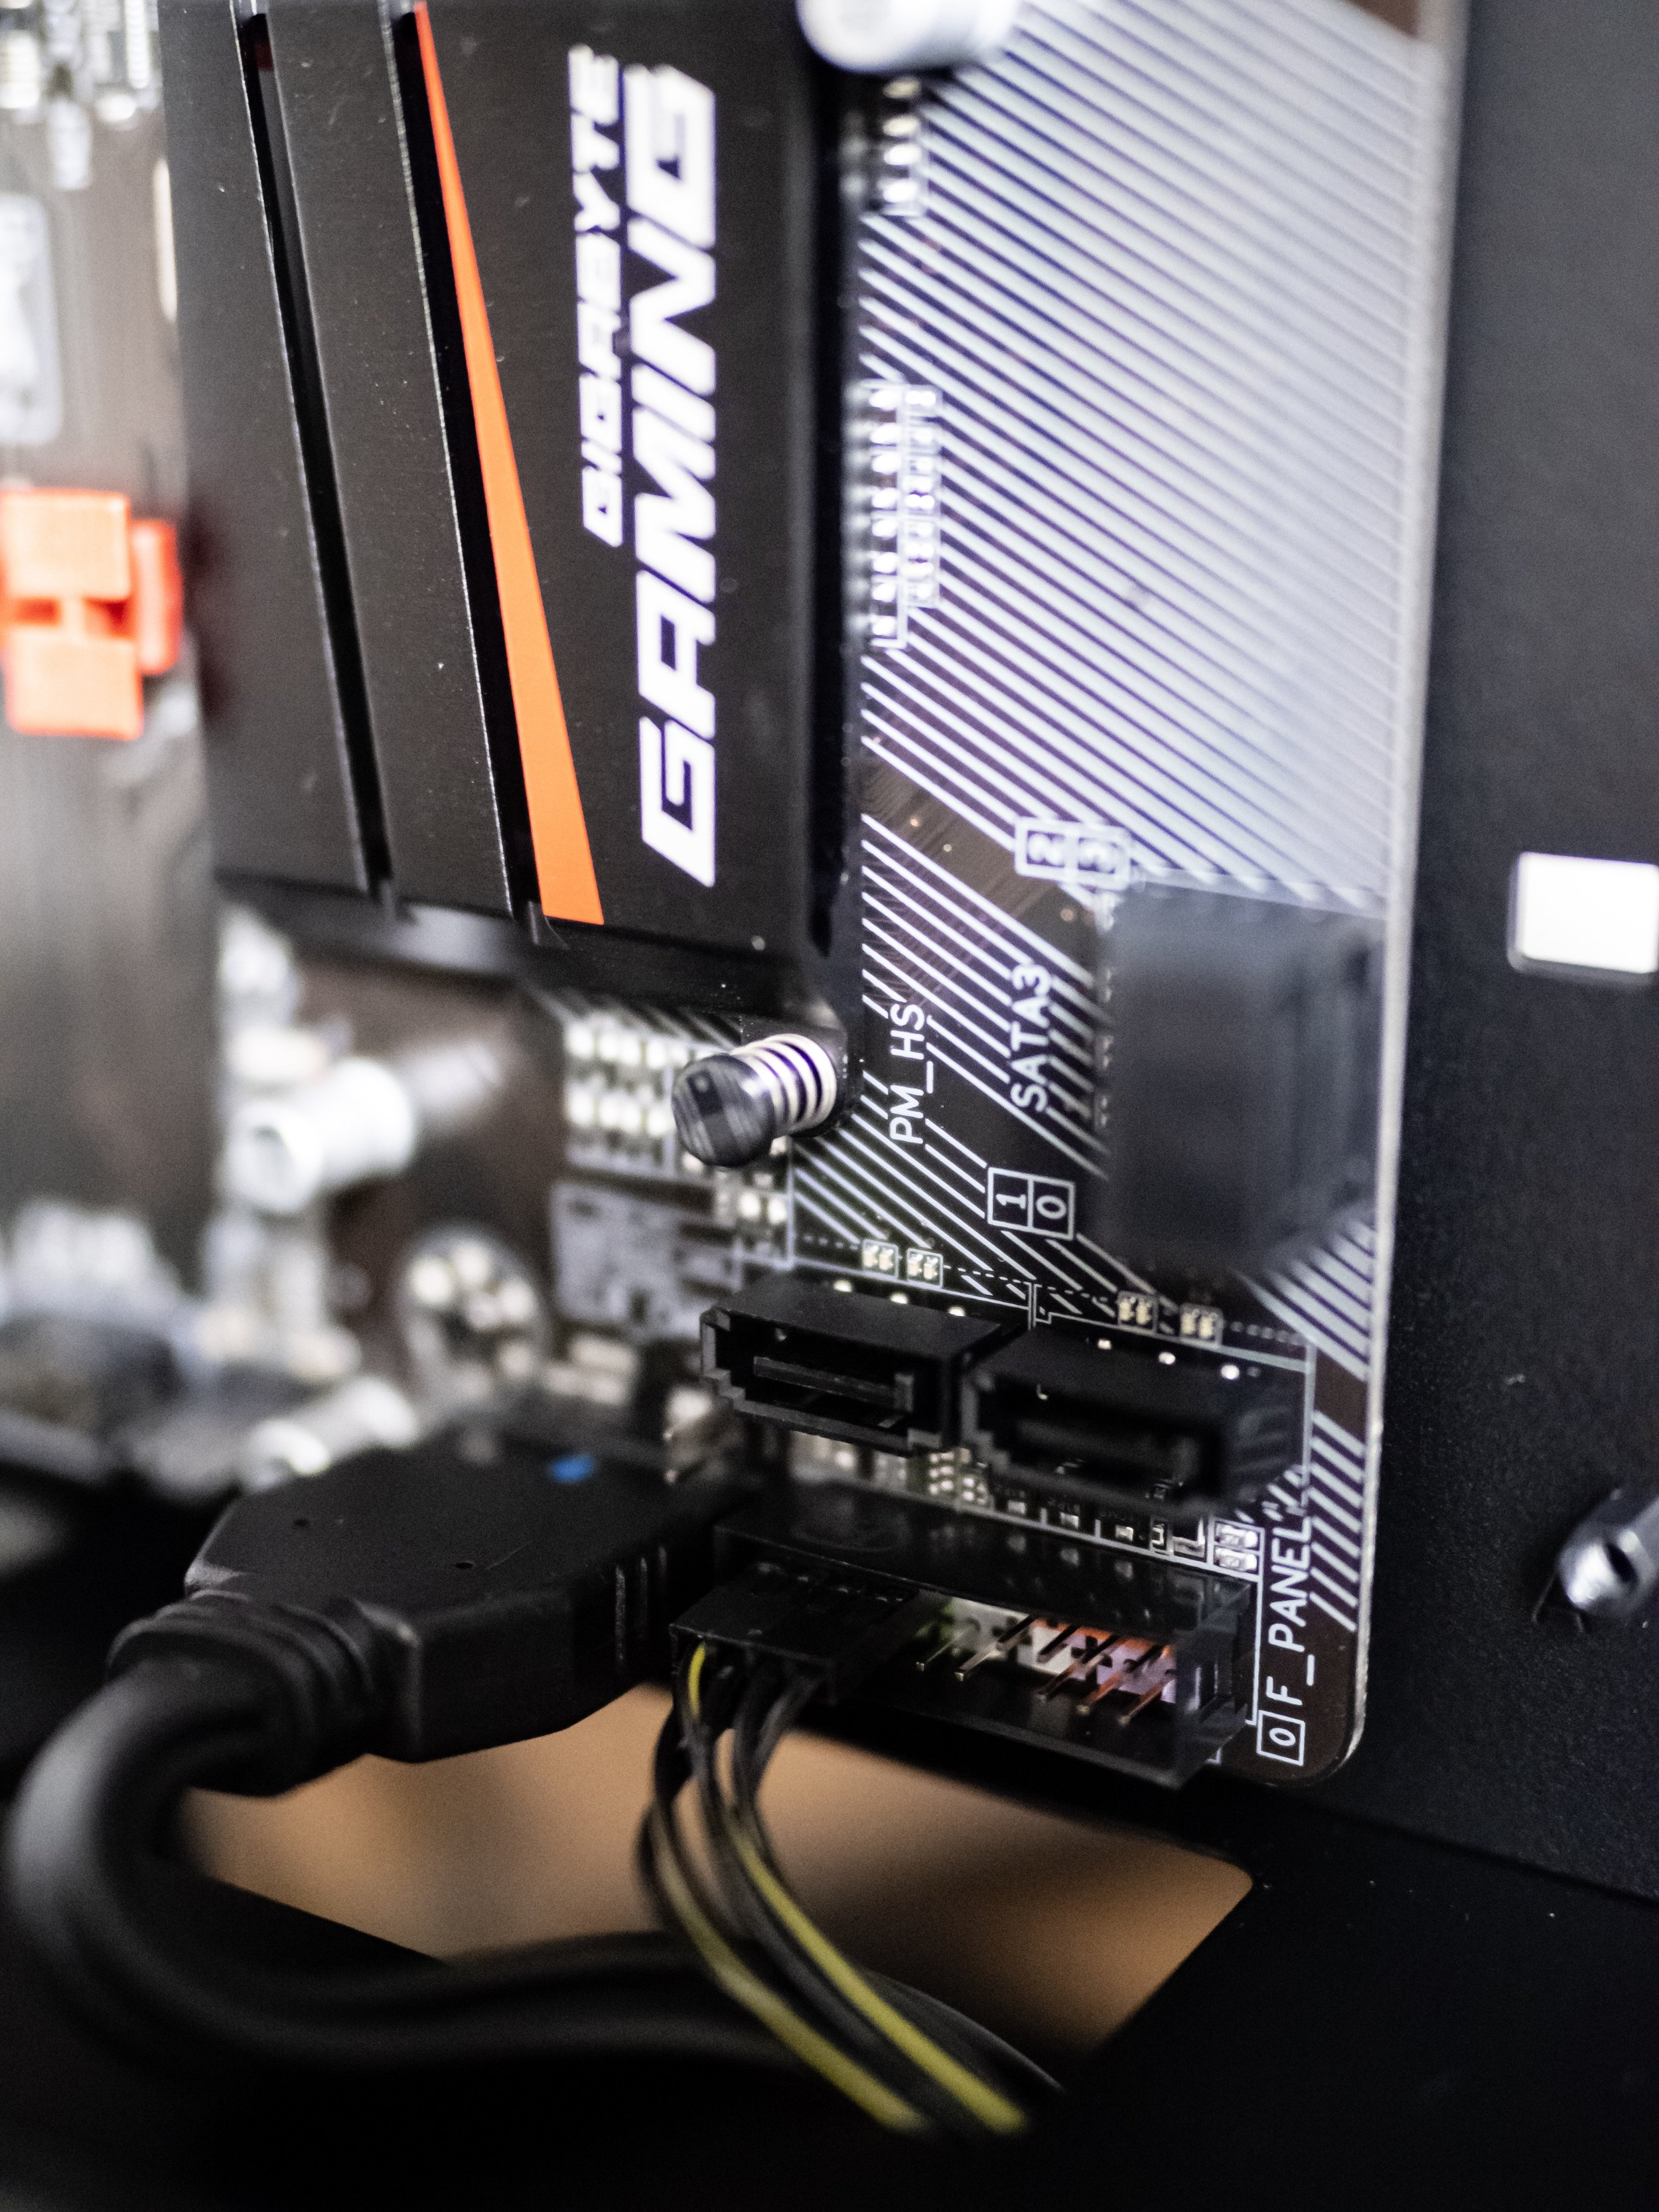 Gaming PC Build Gigabyte AB350 Motherboard Front Panel Connections